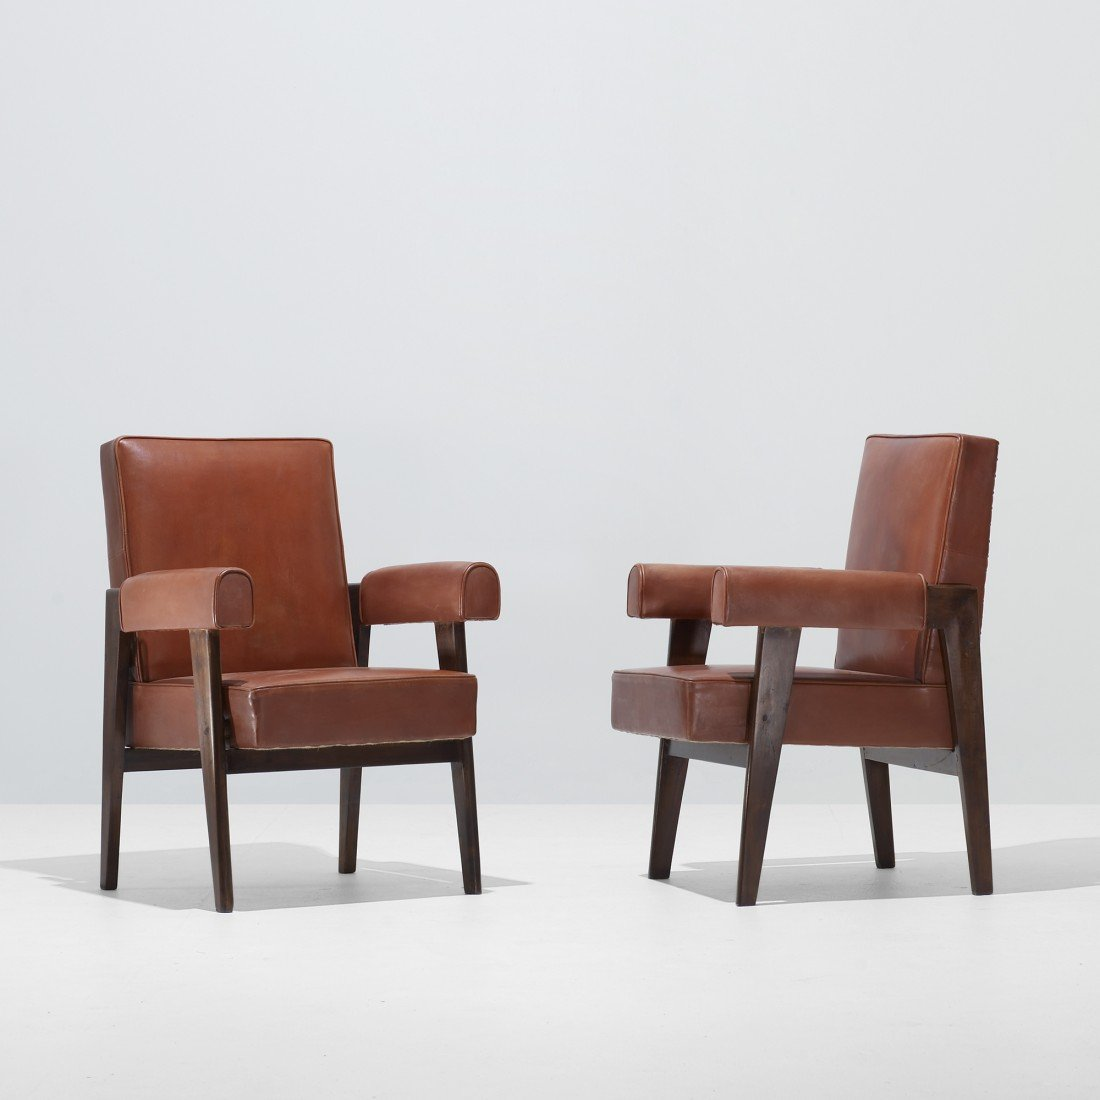 128: Le Corbusier and Jeanneret pair of armchairs